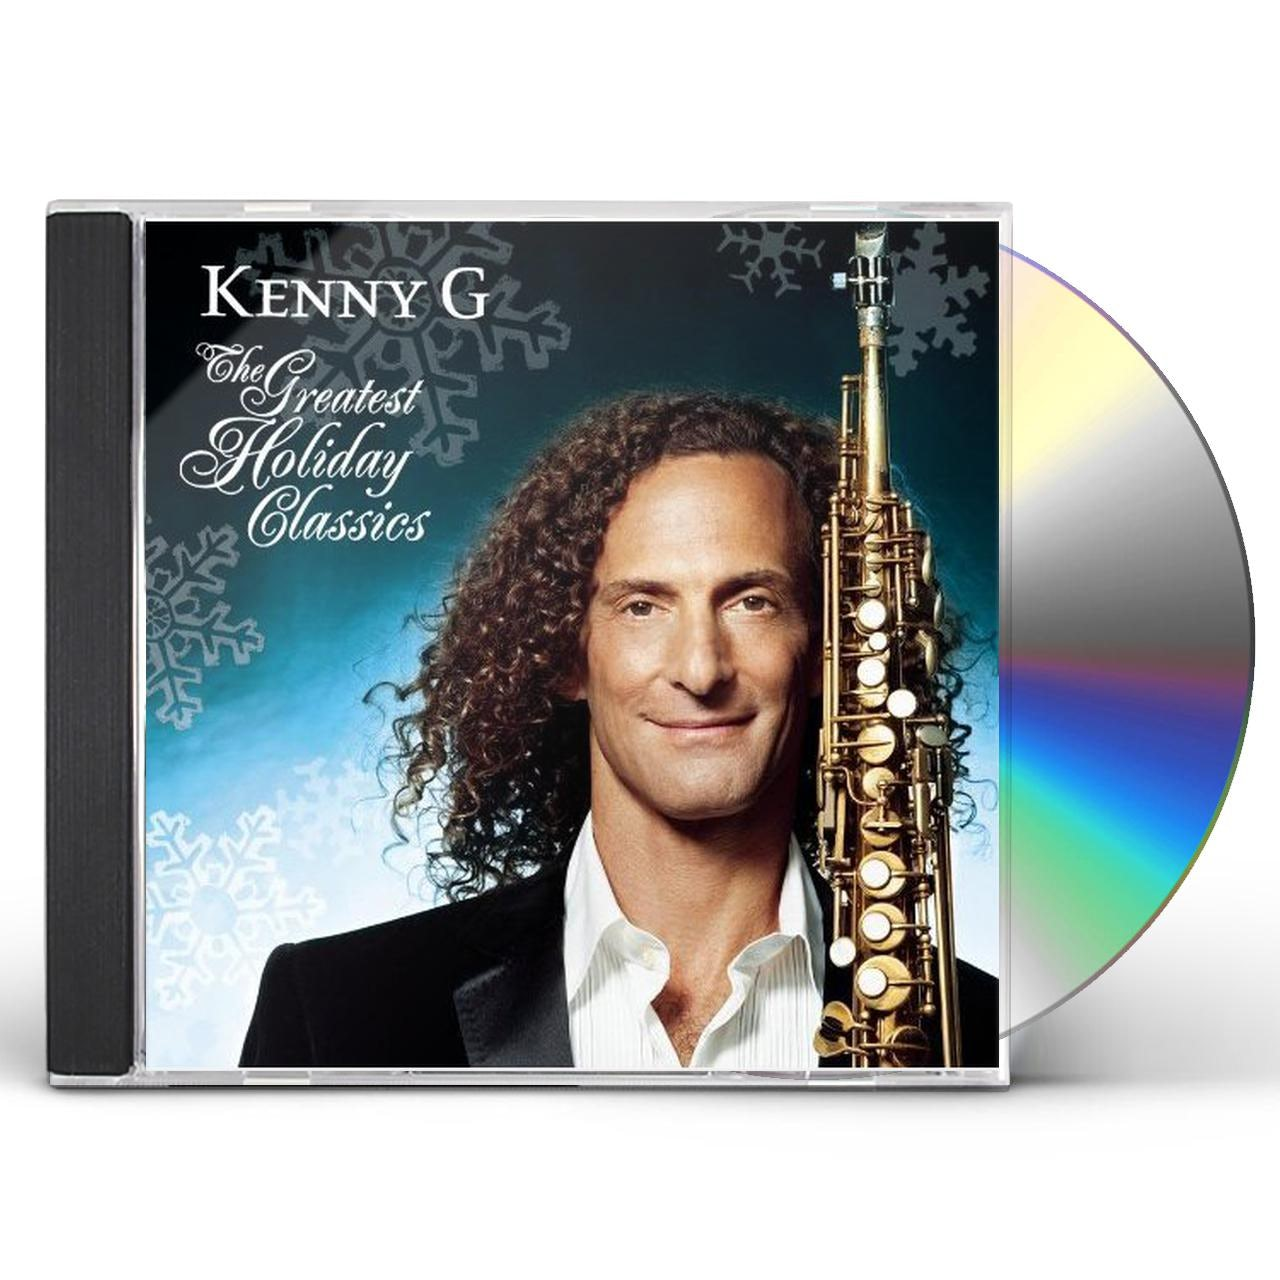 Kenny G Christmas.Kenny G Greatest Holiday Classics Cd